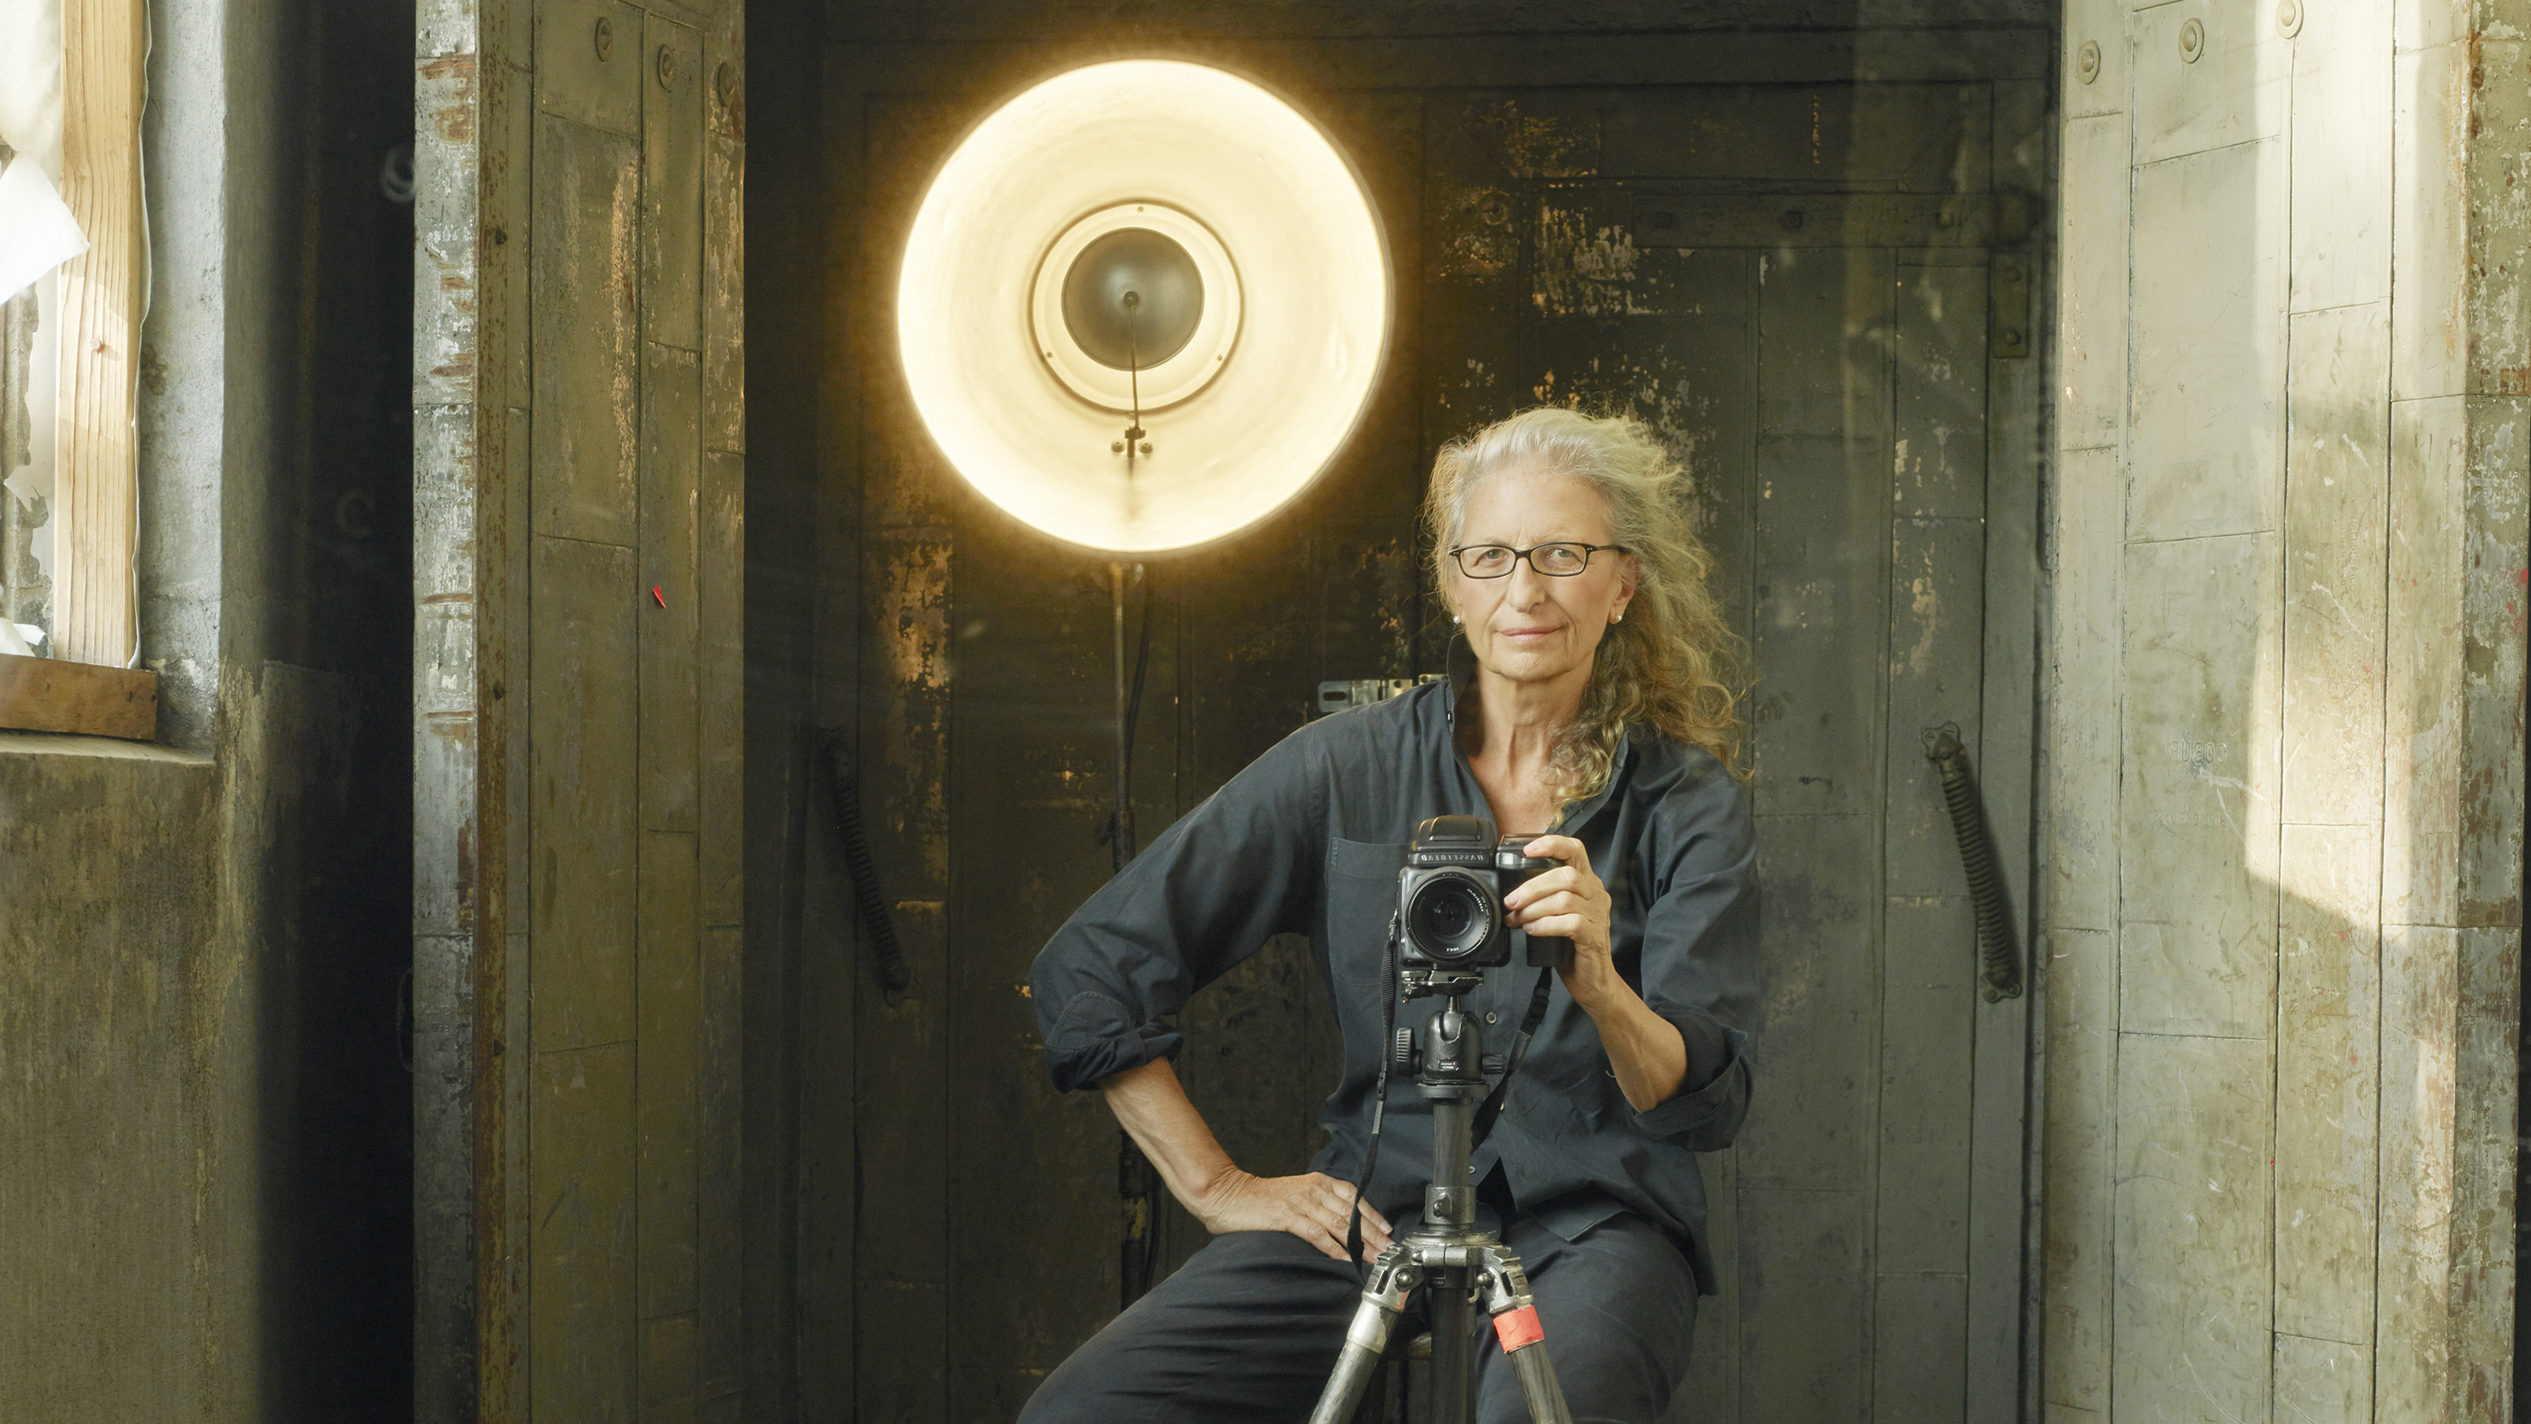 Want to know how to shoot like Annie Leibovitz? This book offers her best photo tips and techniques